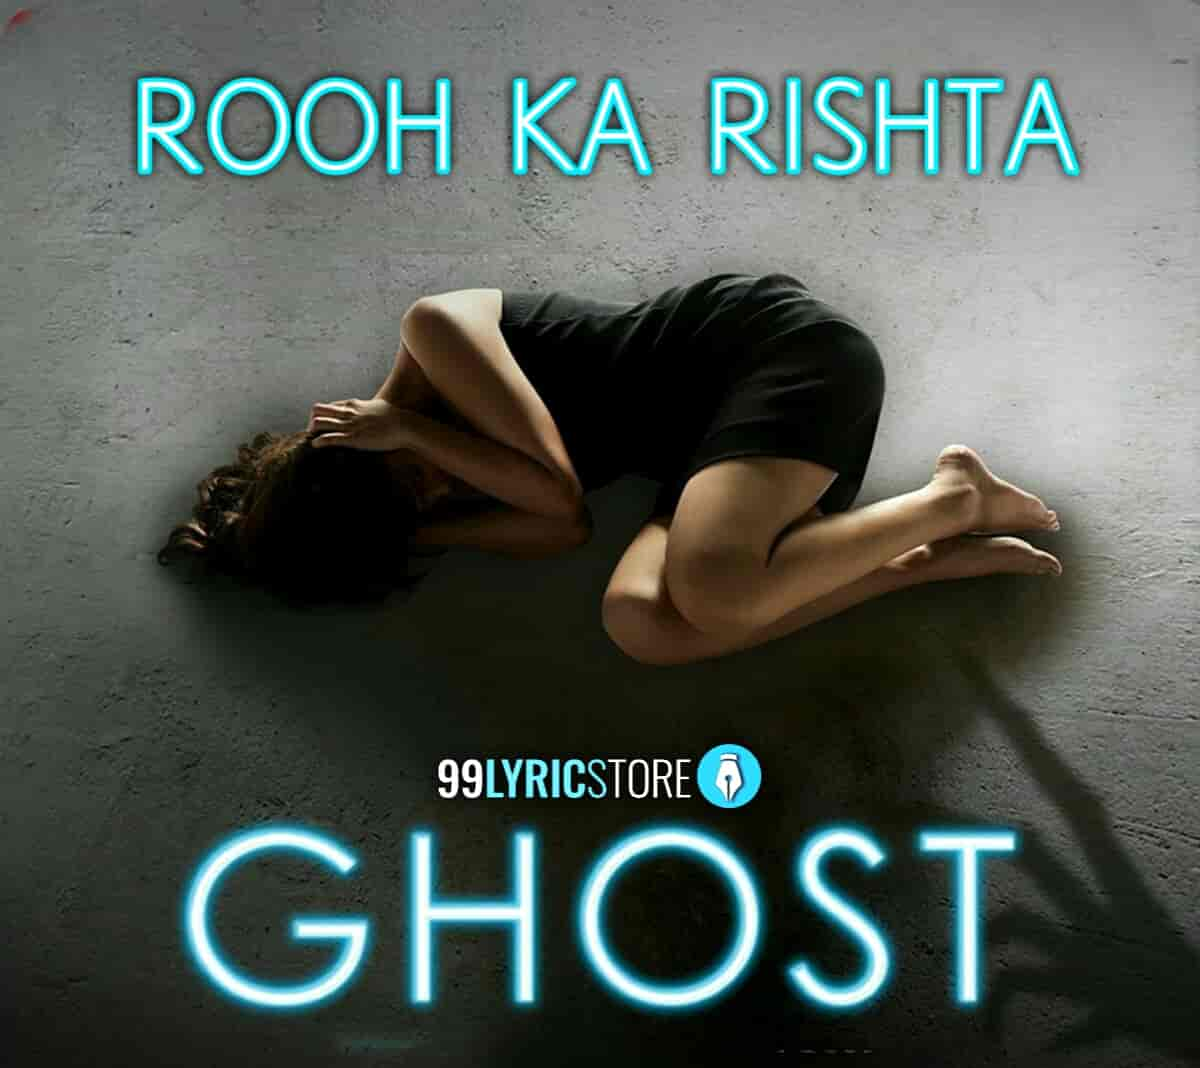 Rooh Ka Rishta Movie Ghost Images